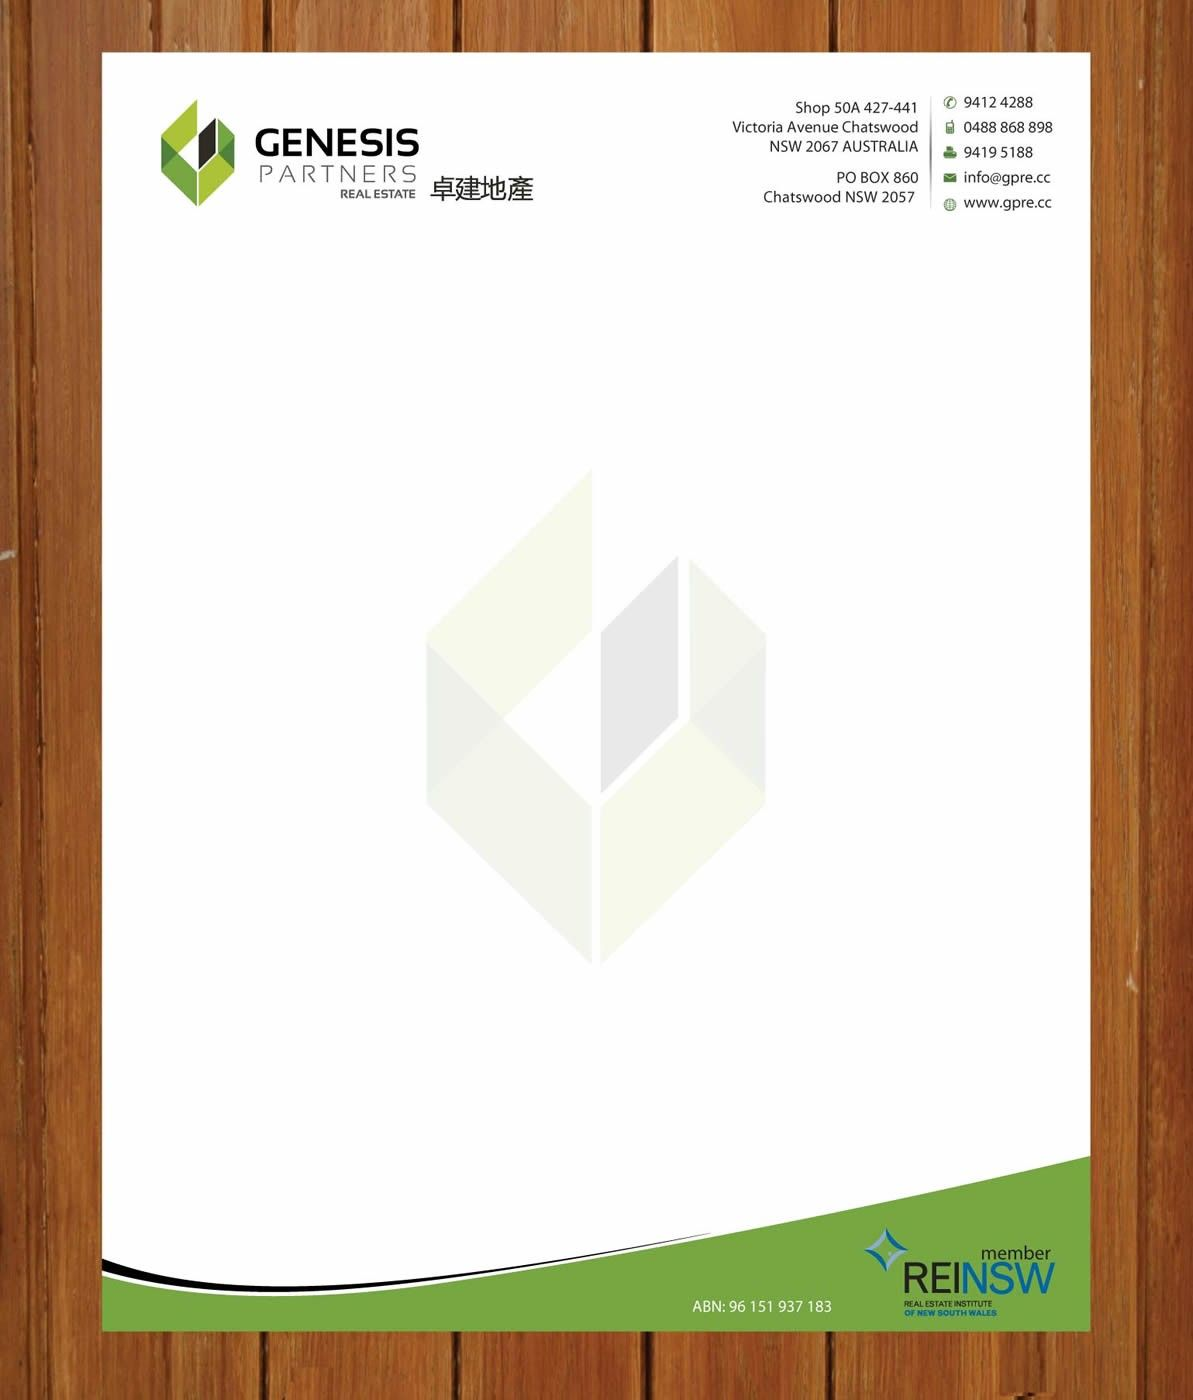 Business letterhead designs custom company letterheads usa business letterhead designs custom company letterheads usa accmission